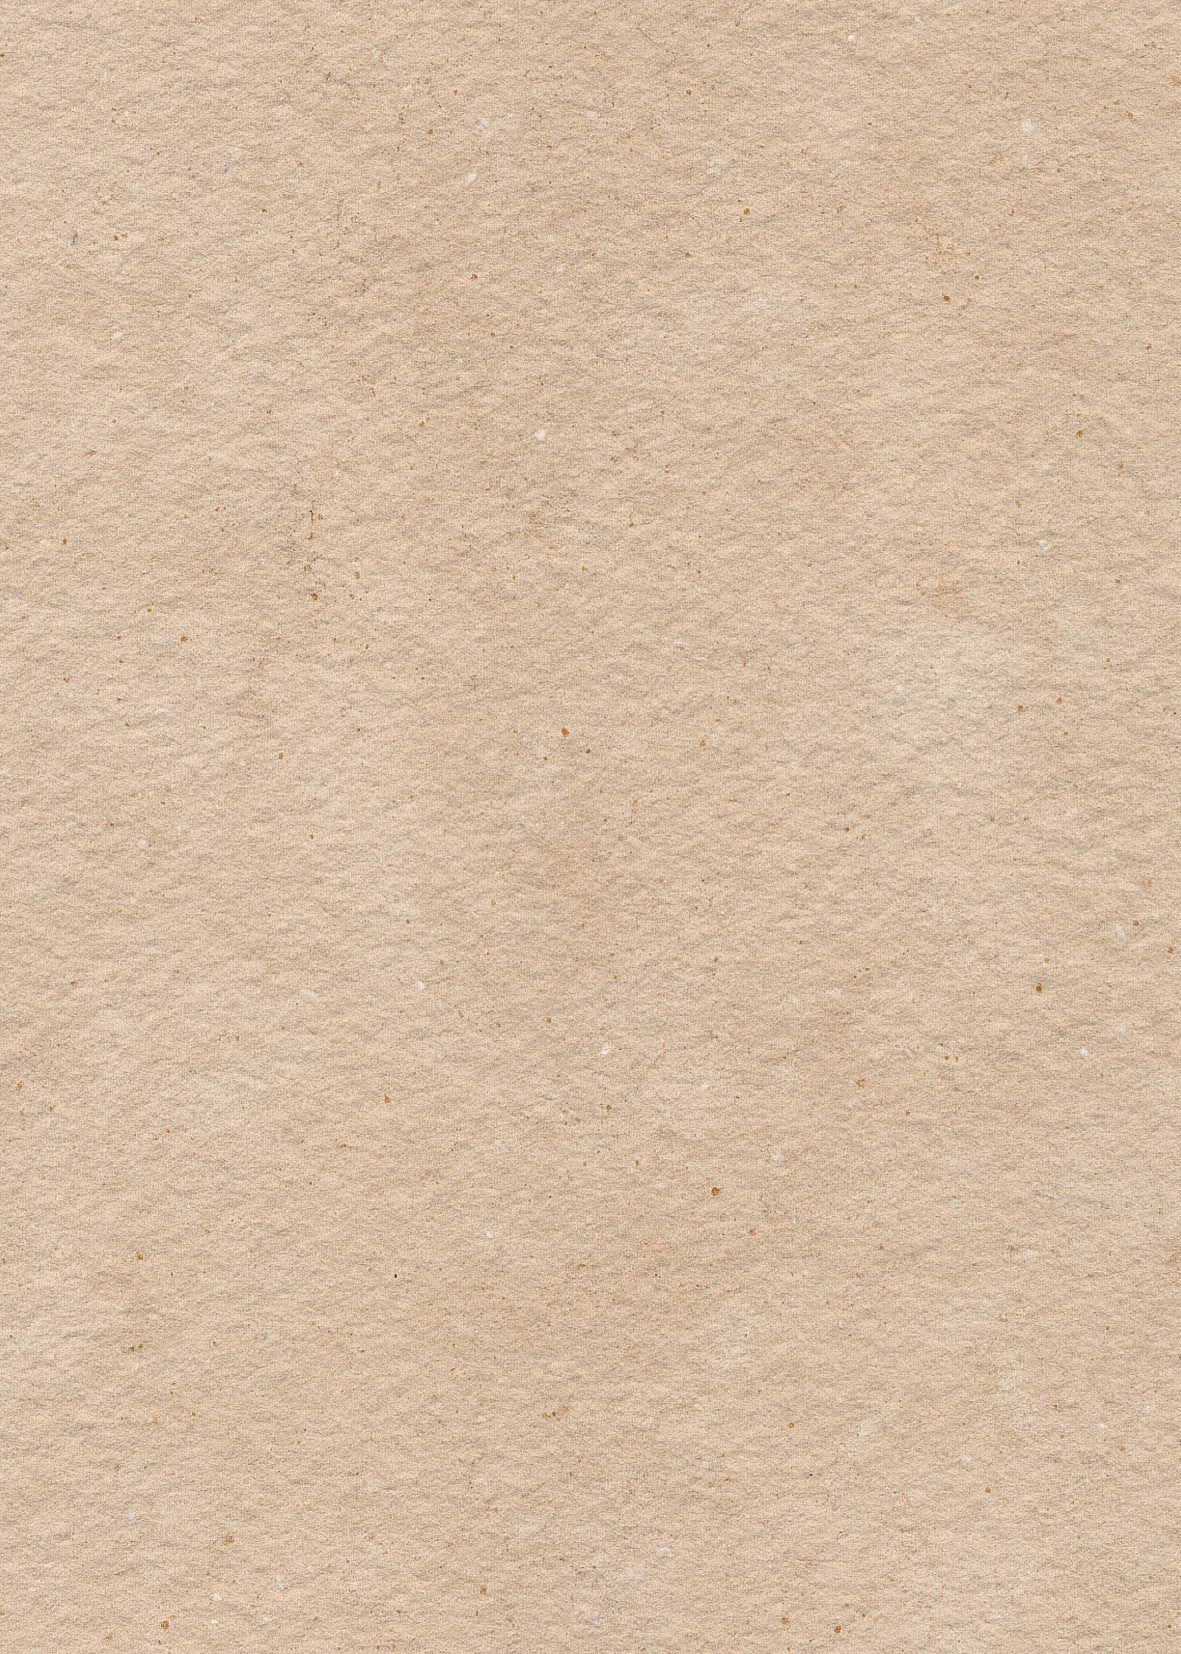 Download Paper Background Pb 05 Paper Background Texture Textured Background Paper Background